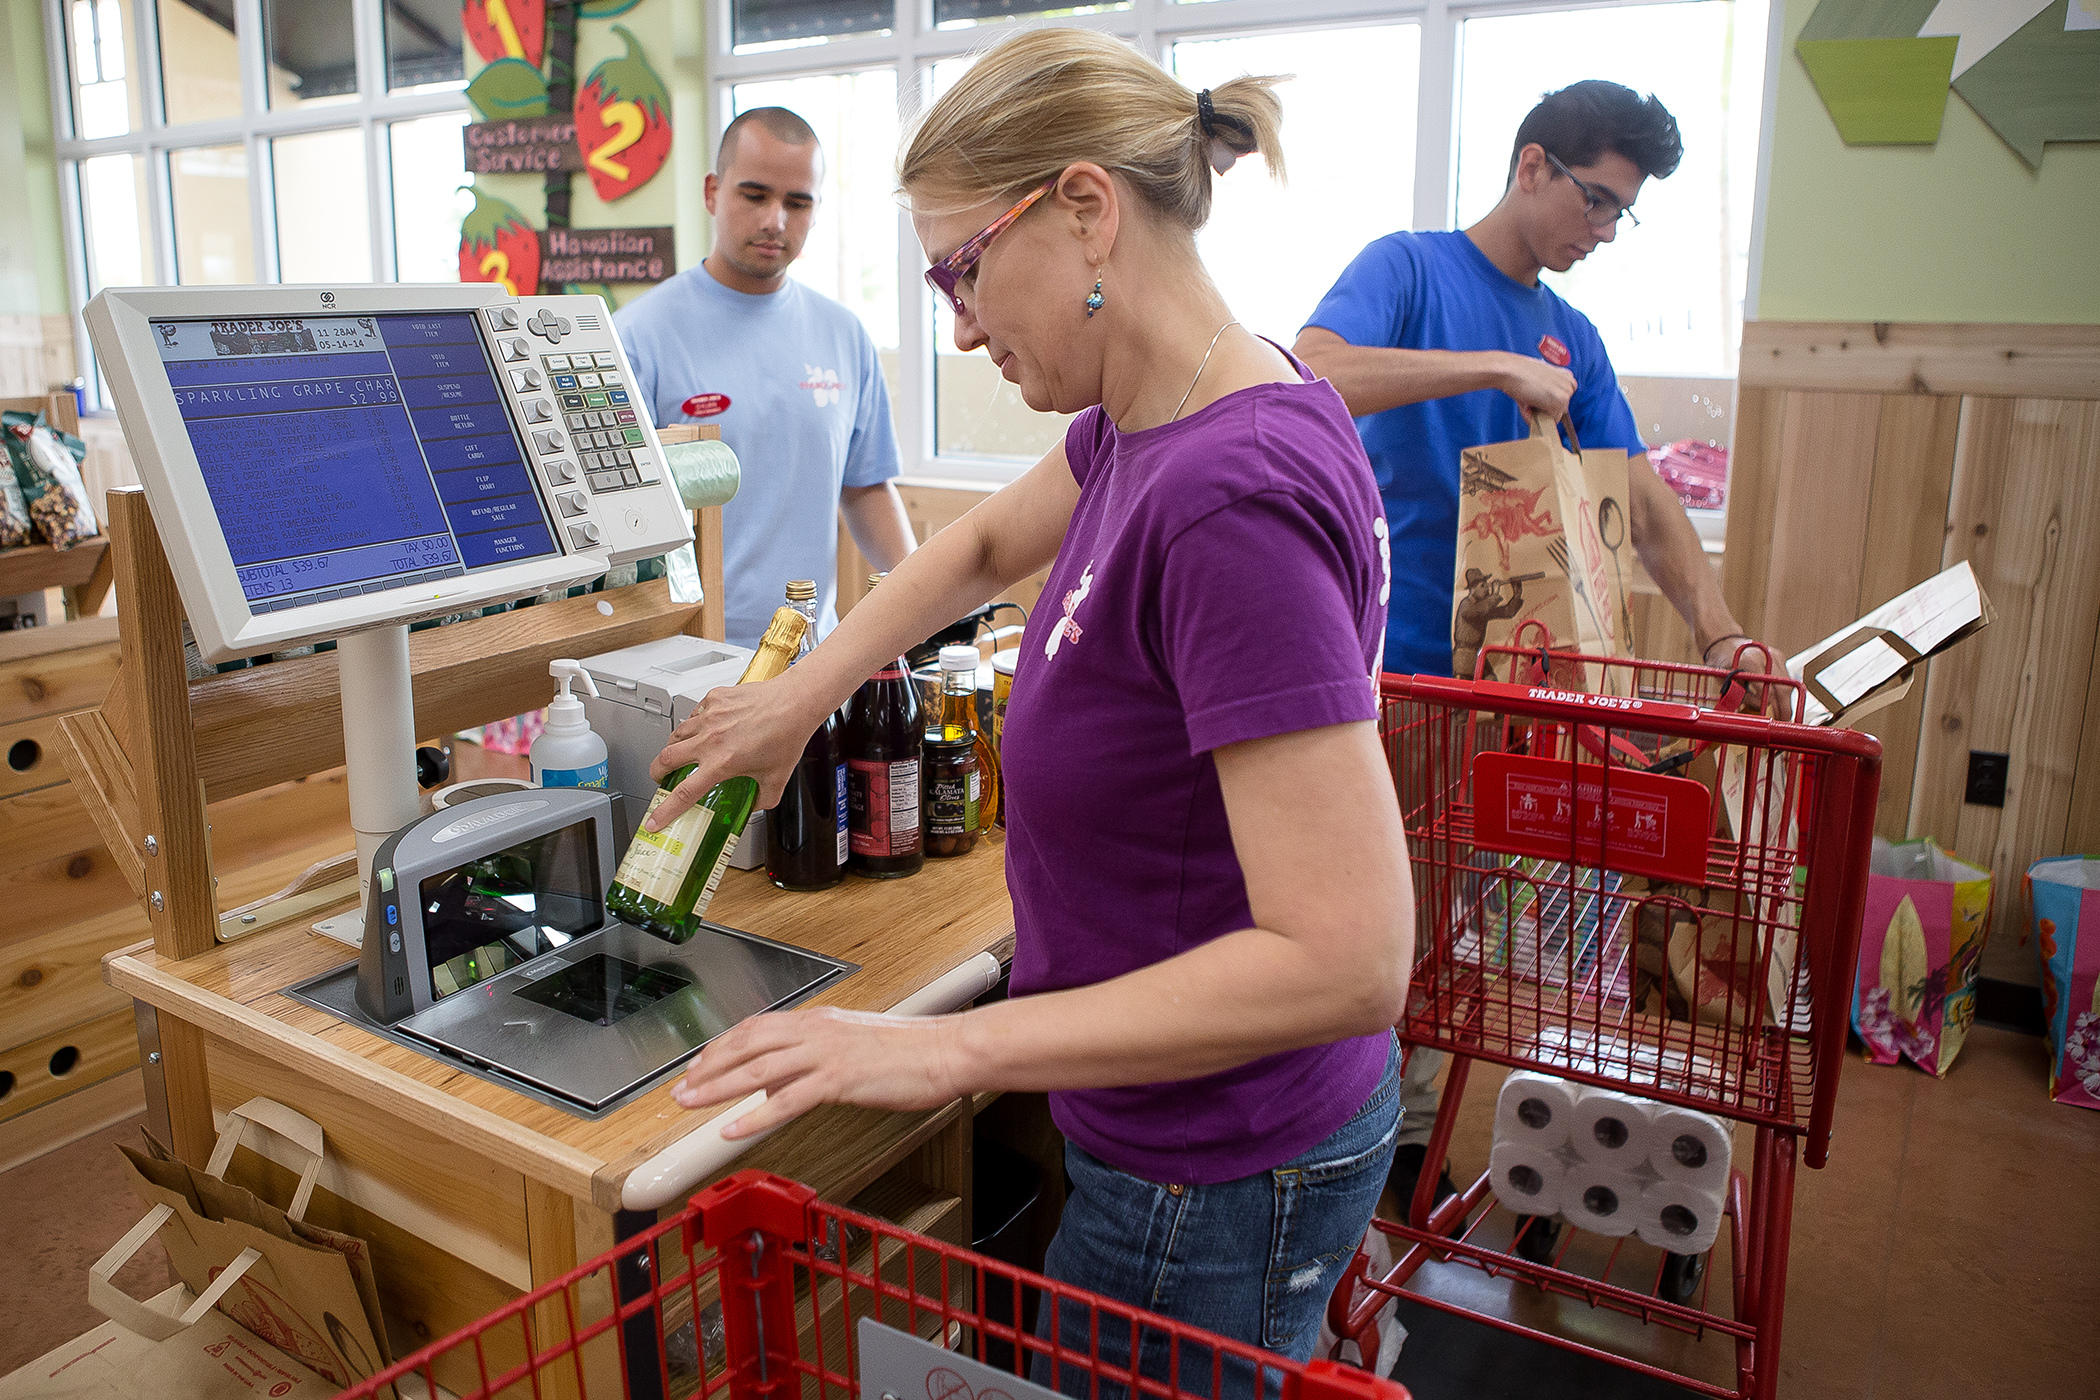 Wellington, Florida, USA. 14th May, 2014. NOTE: THESE PHOTOS MAY NOT APPEAR ANYWHERE (ONLINE OR IN PRINT) UNTIL 12:01 AM ON MAY 15. Lorraine Blake, center, of Wellington, practices working the cash register while Dylan Smith, left, of Wellington, and Ryan